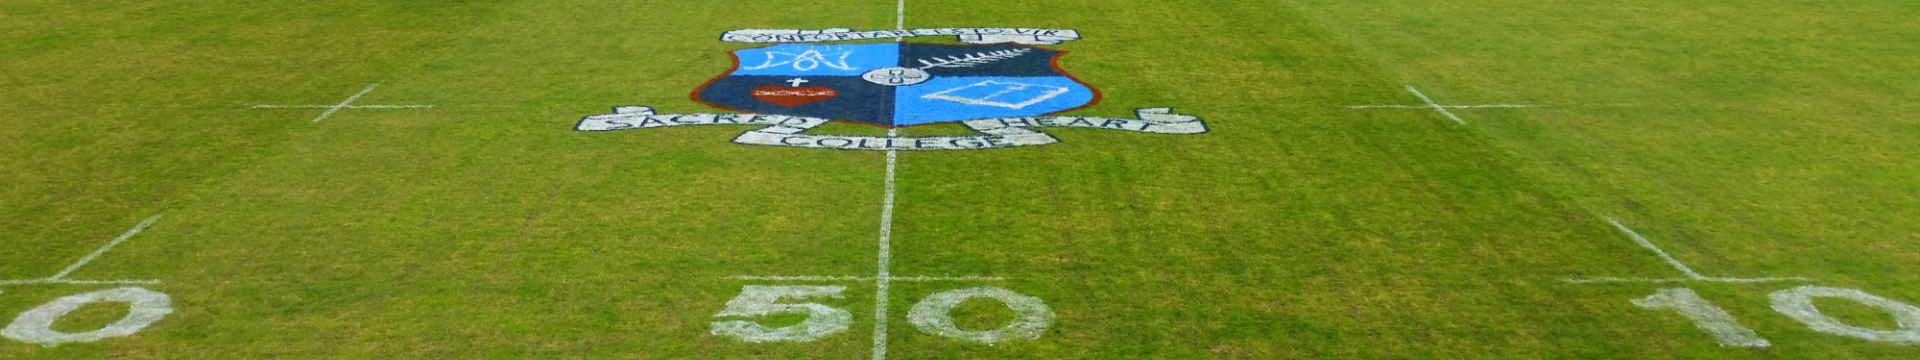 Sacred heart sliders